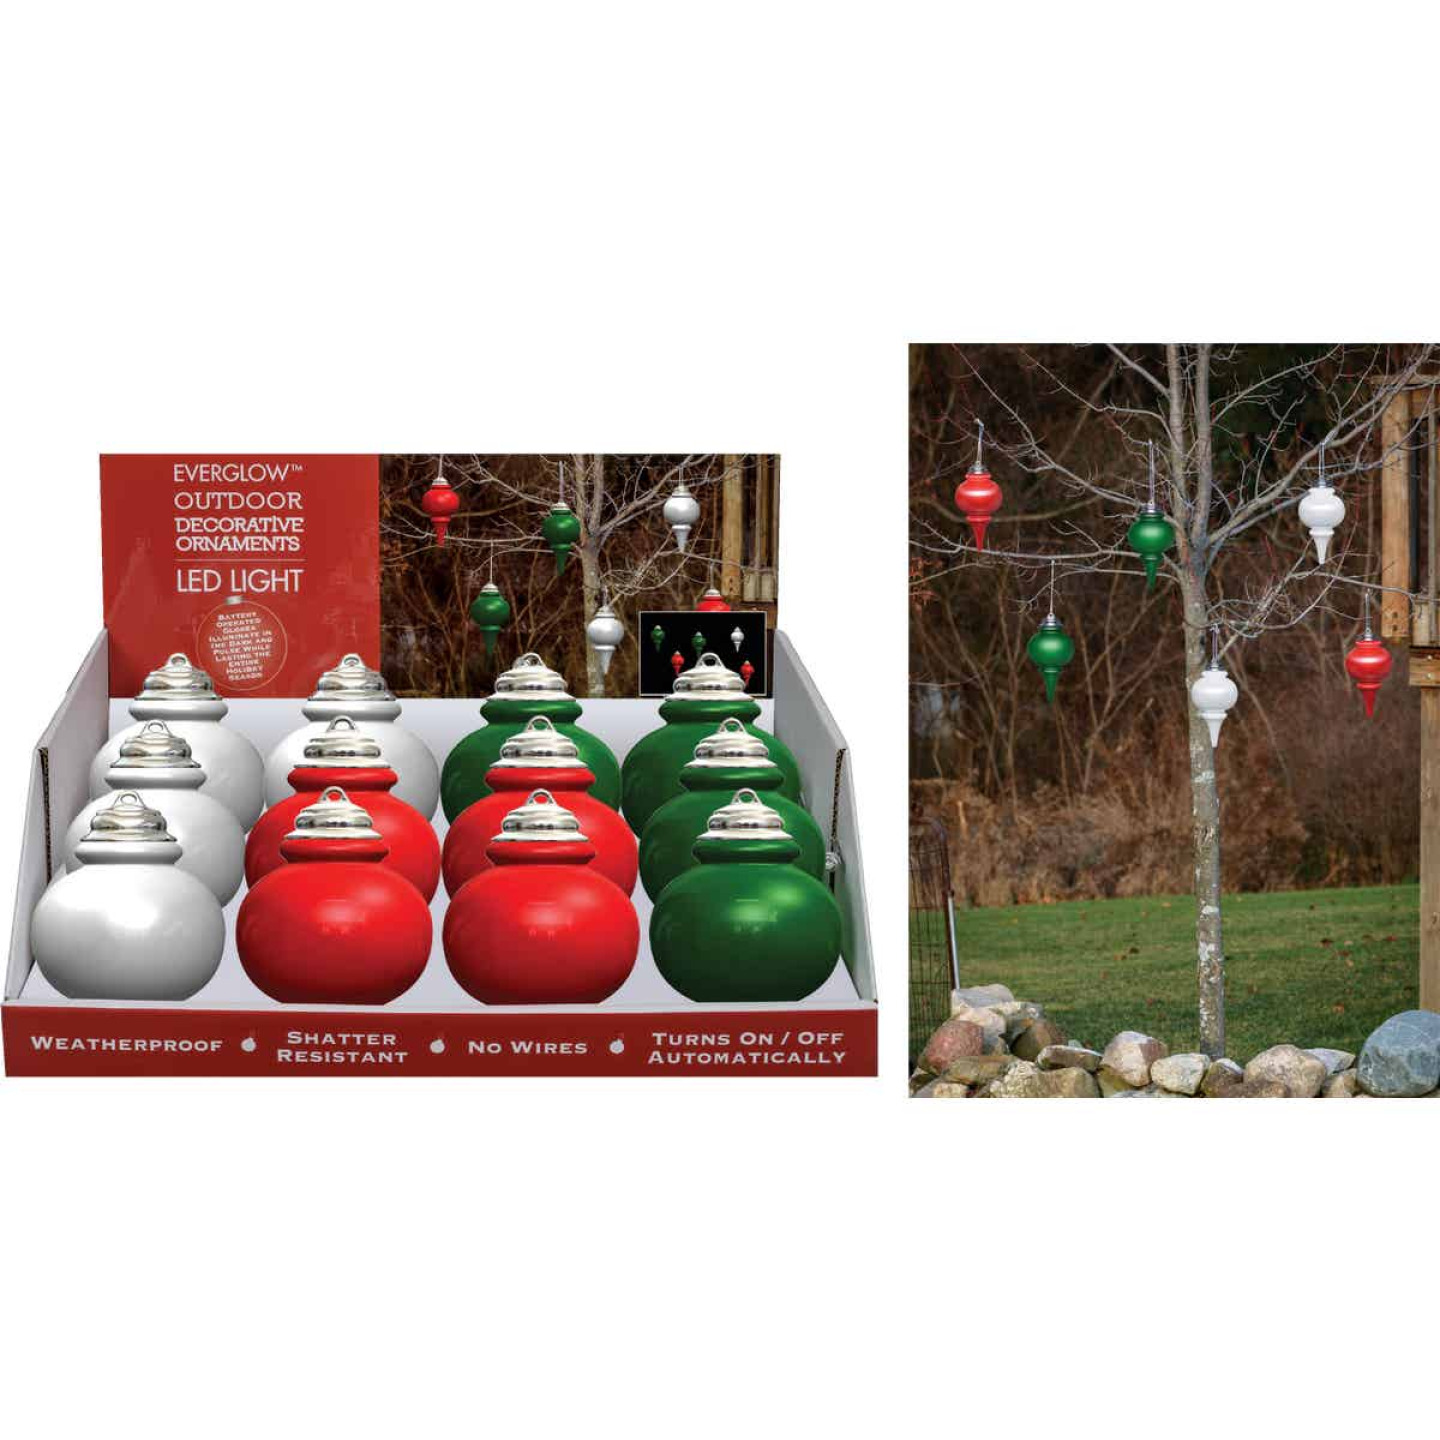 Xodus 9 In. Shatter Resistant LED Outdoor Finial Christmas Ornament Image 1